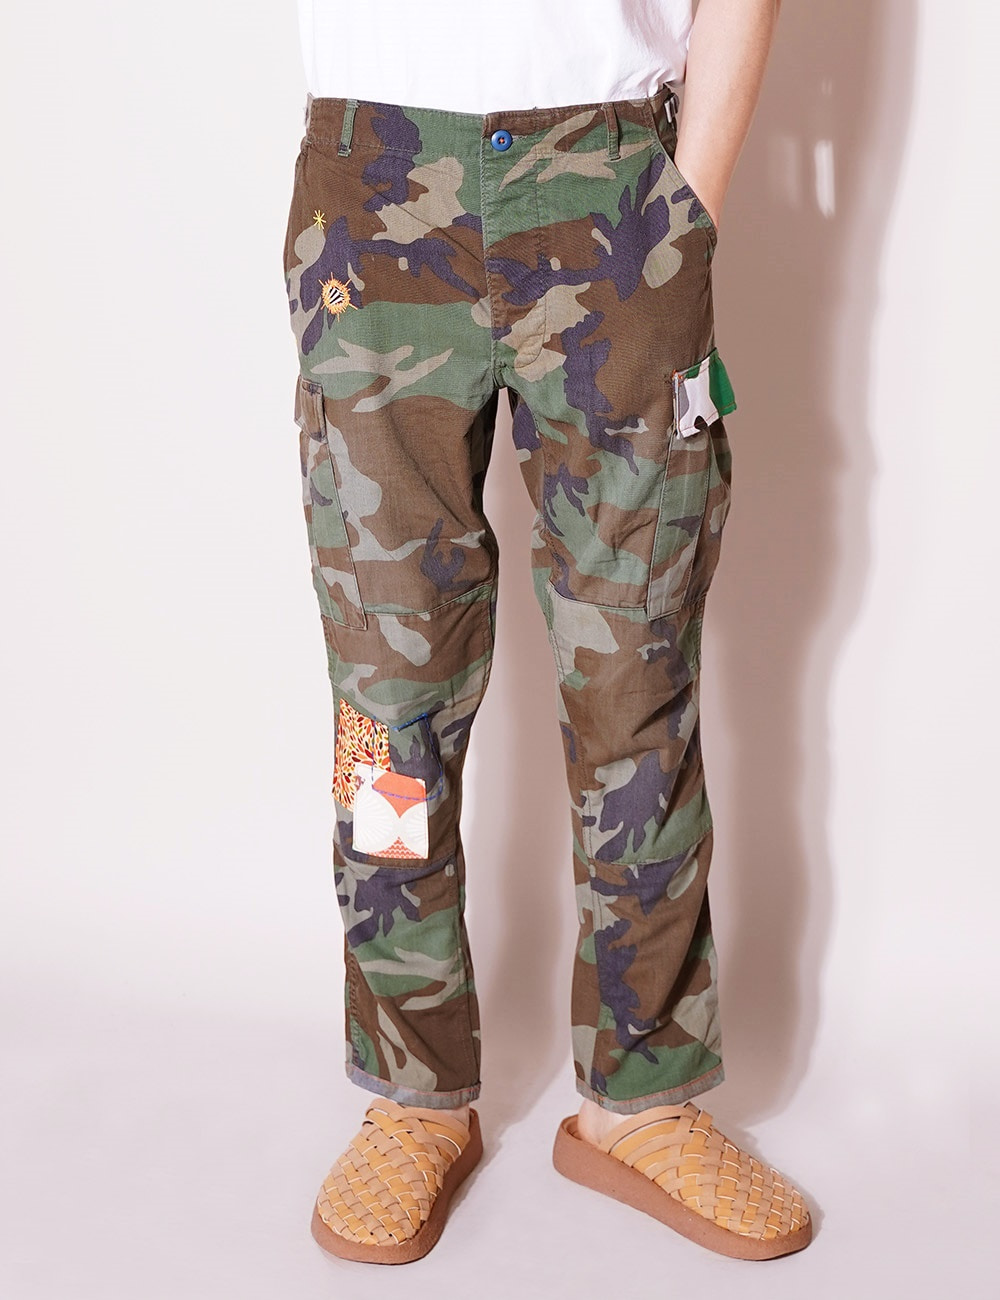 ATELIER & REPAIRS : CAMO CARGO PANT ON LSD (SIZE 34) - B Type